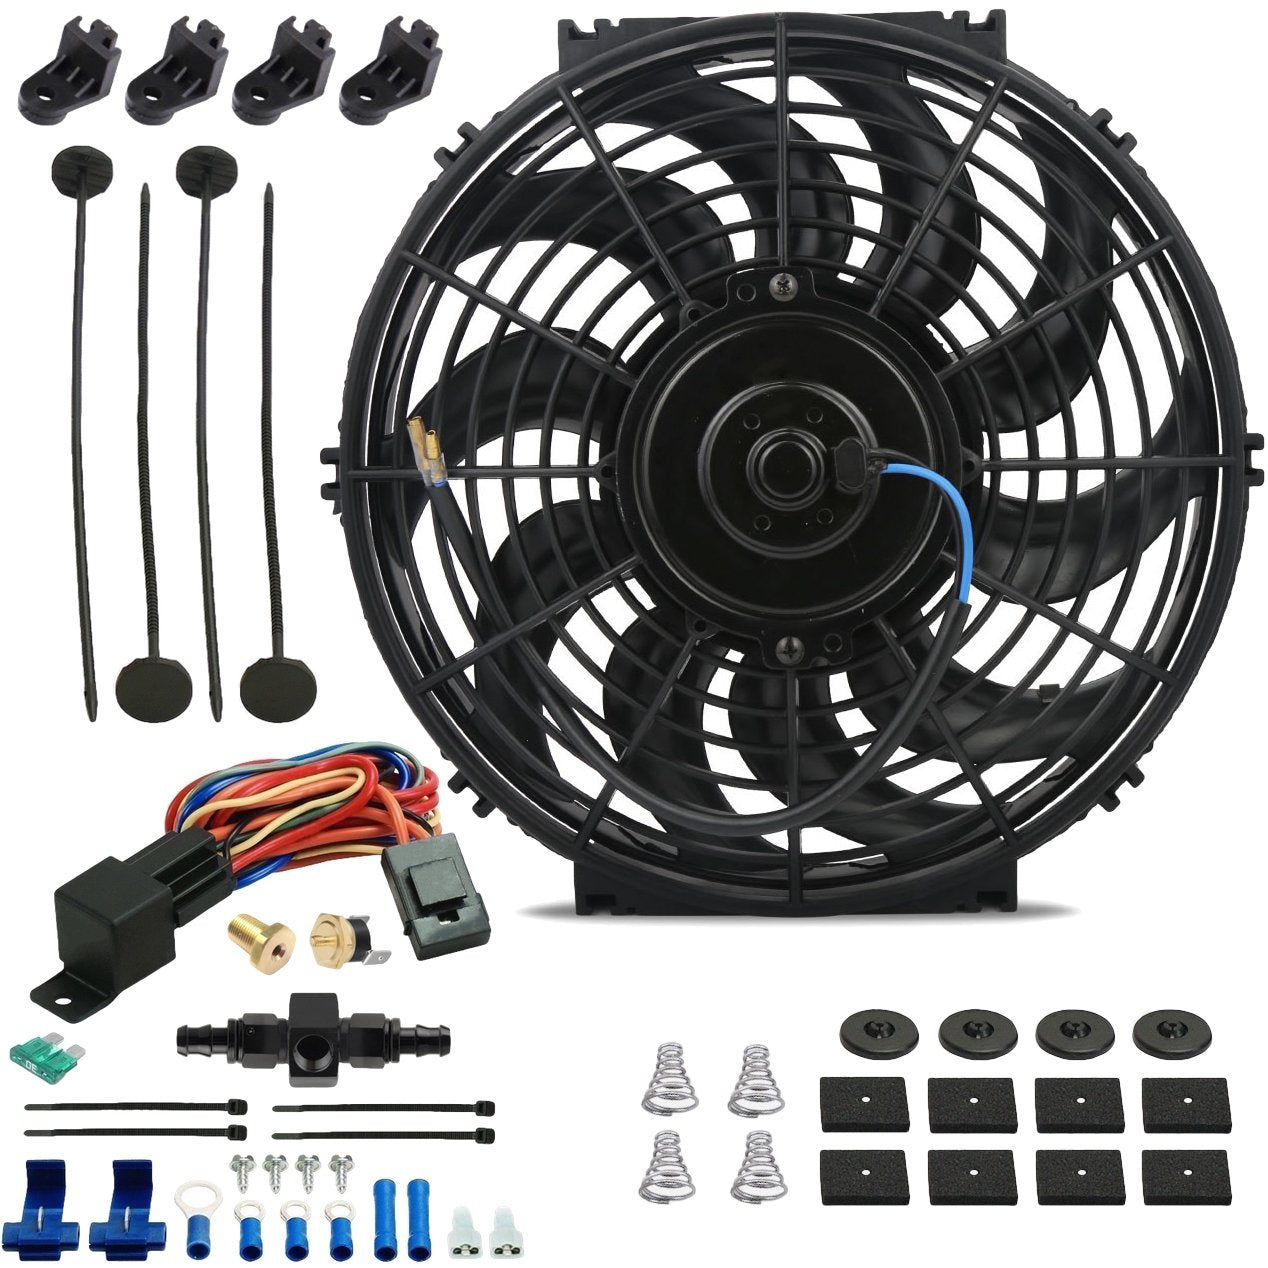 "12"" Inch Electric Engine Radiator Cooling Fan In-Line AN Hose Fitting Thermostat Temperature Switch Wire Kit-Single Electric Fans-American Volt-4AN-140'F On - 125'F Off-American Volt"